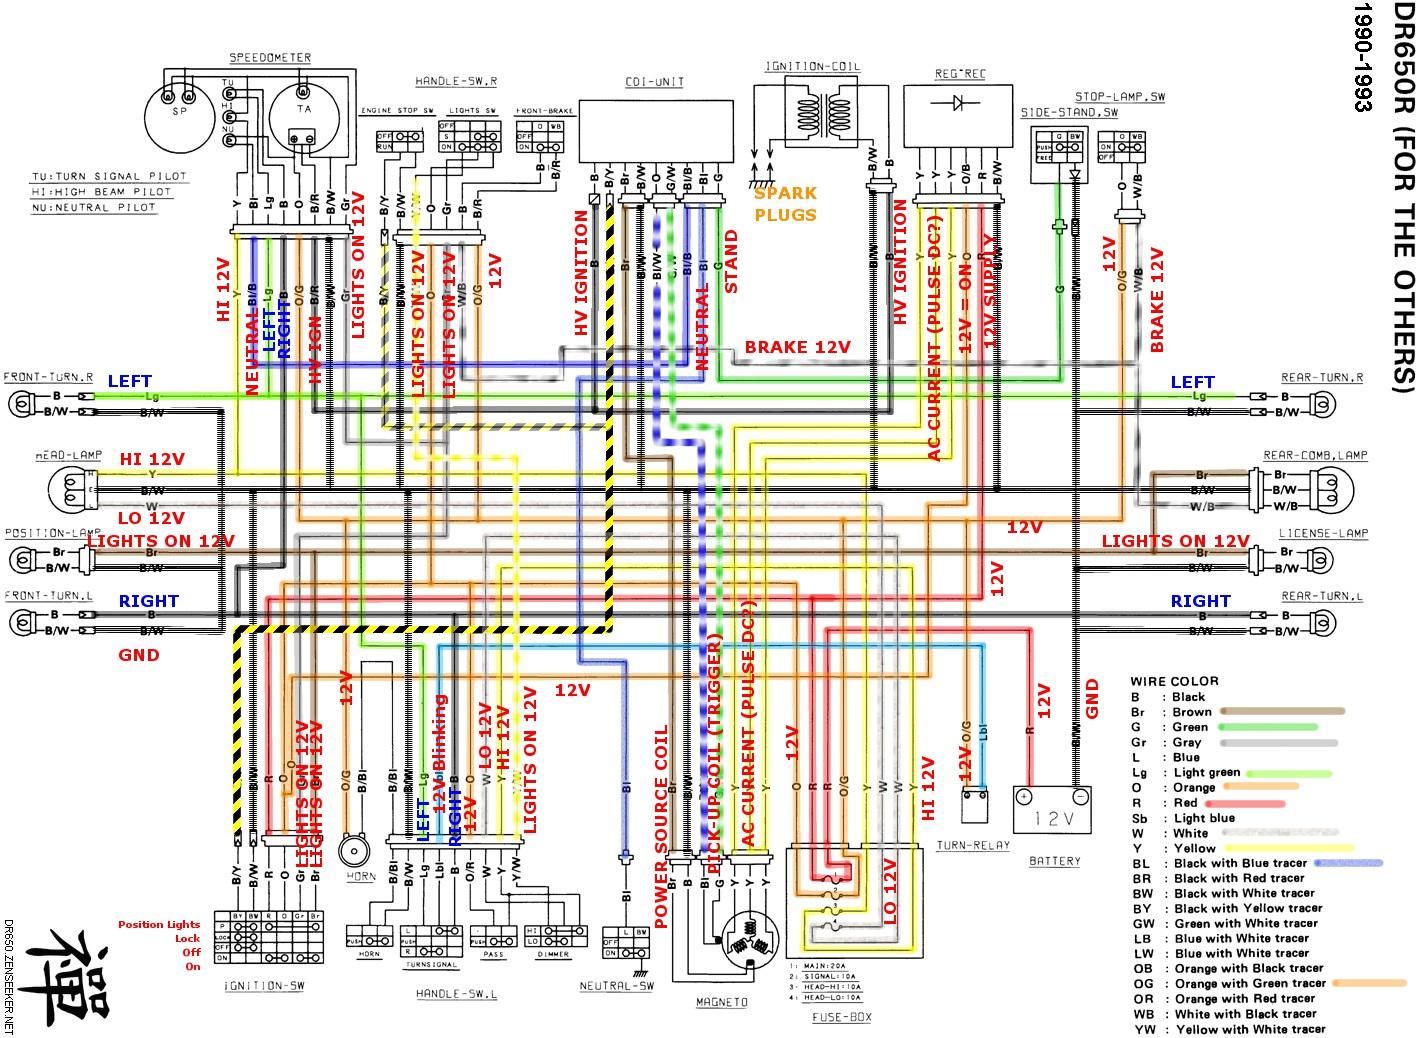 2006 Ford Focus Radio Wiring Diagram 2008 All Kind Of 2014 Suzuki Dr650 Electrical Page 2000